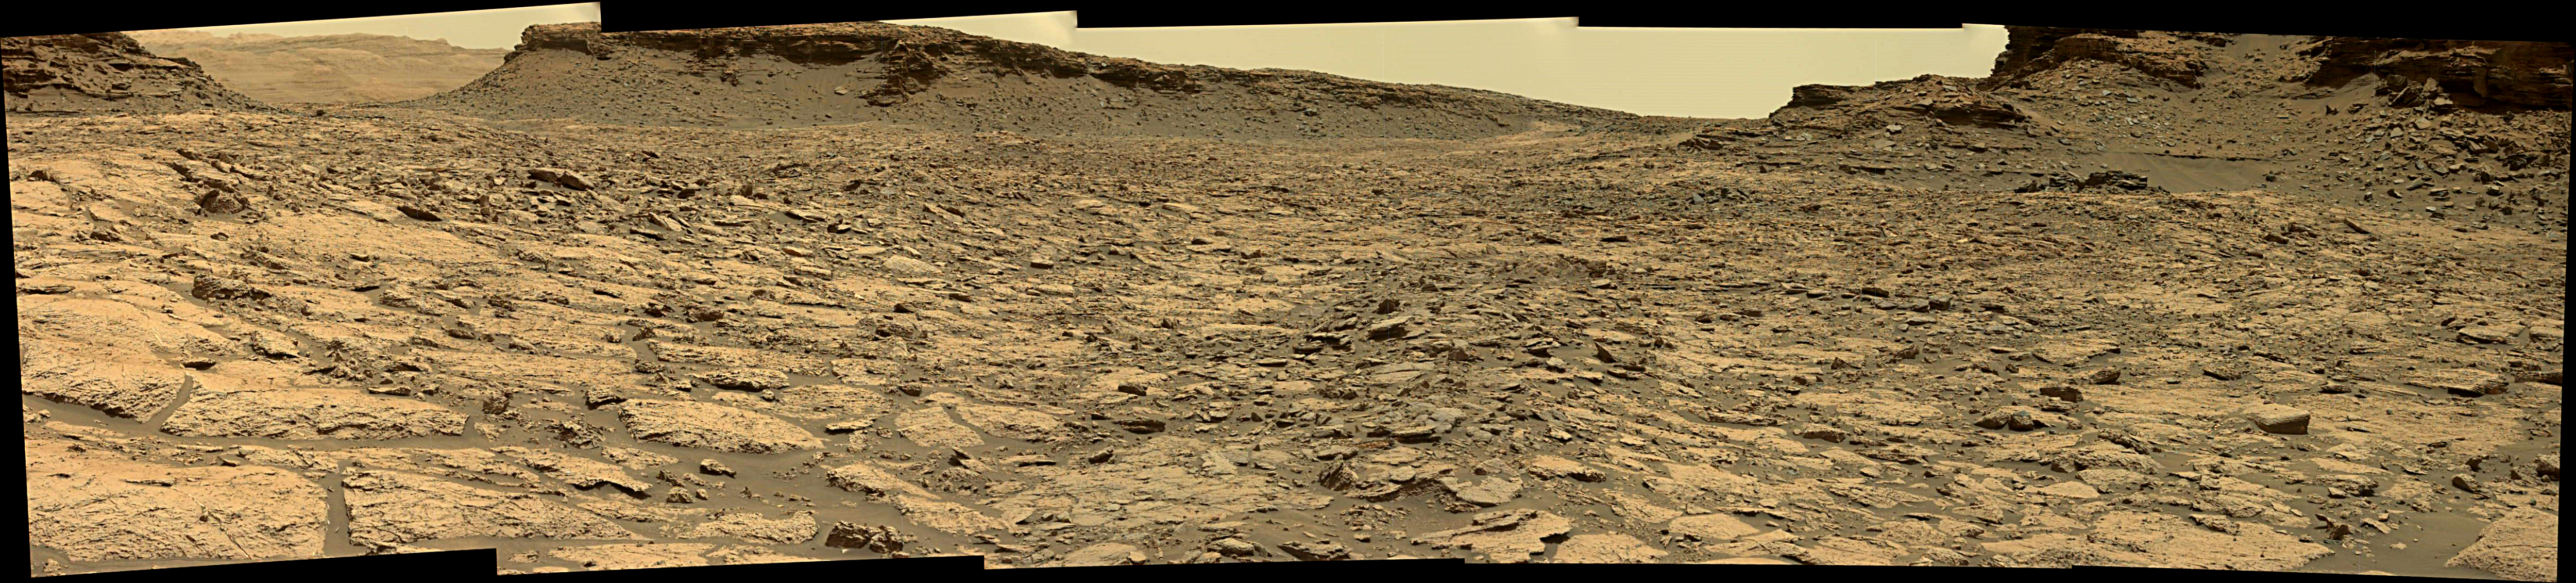 panoramic curiosity rover view 1e - sol 1438 - was life on mars